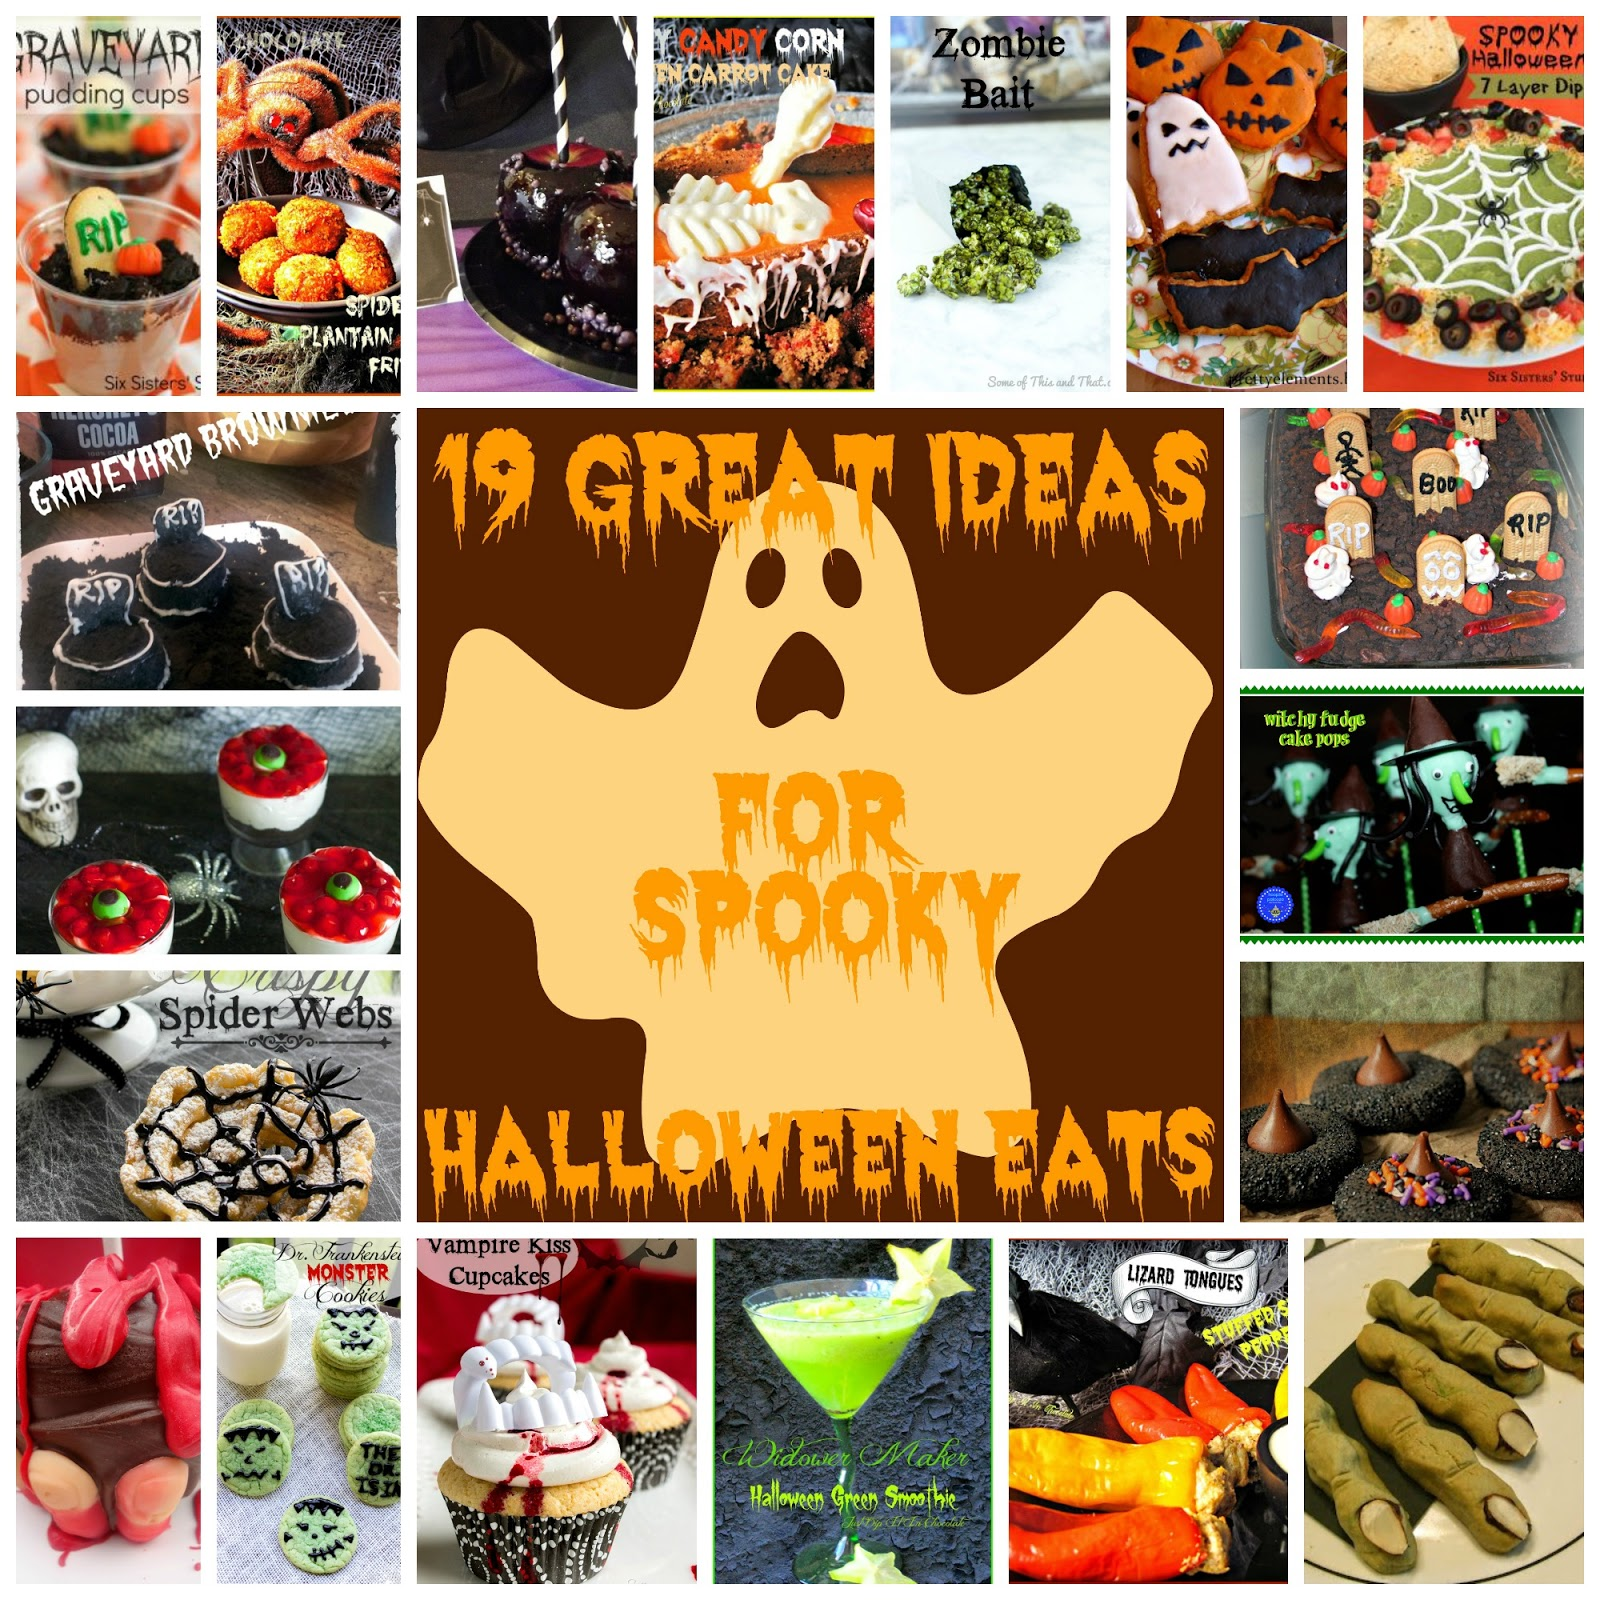 This is a Great Idea Thursdays #roundup of spooky food for Halloween